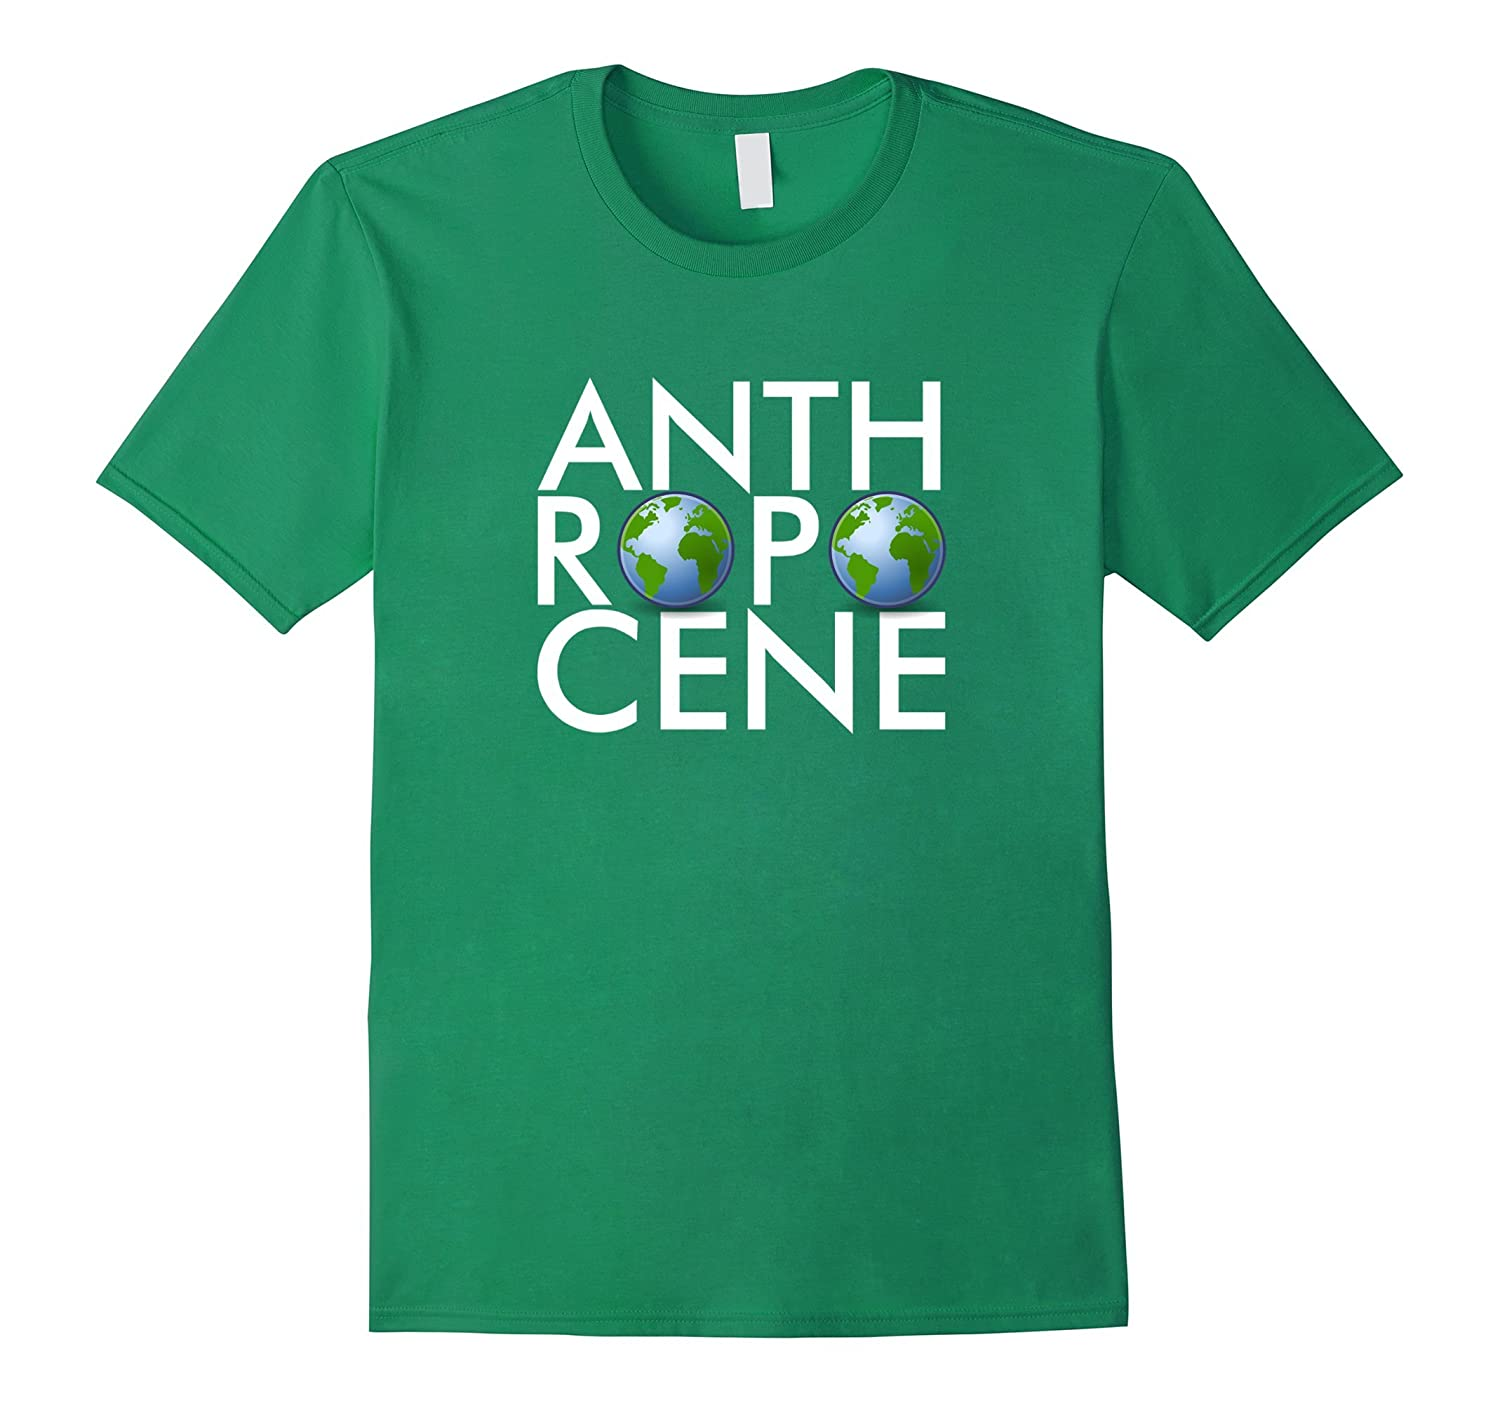 Anthropocene T-Shirt Protect our Environment  Earth Day-CD